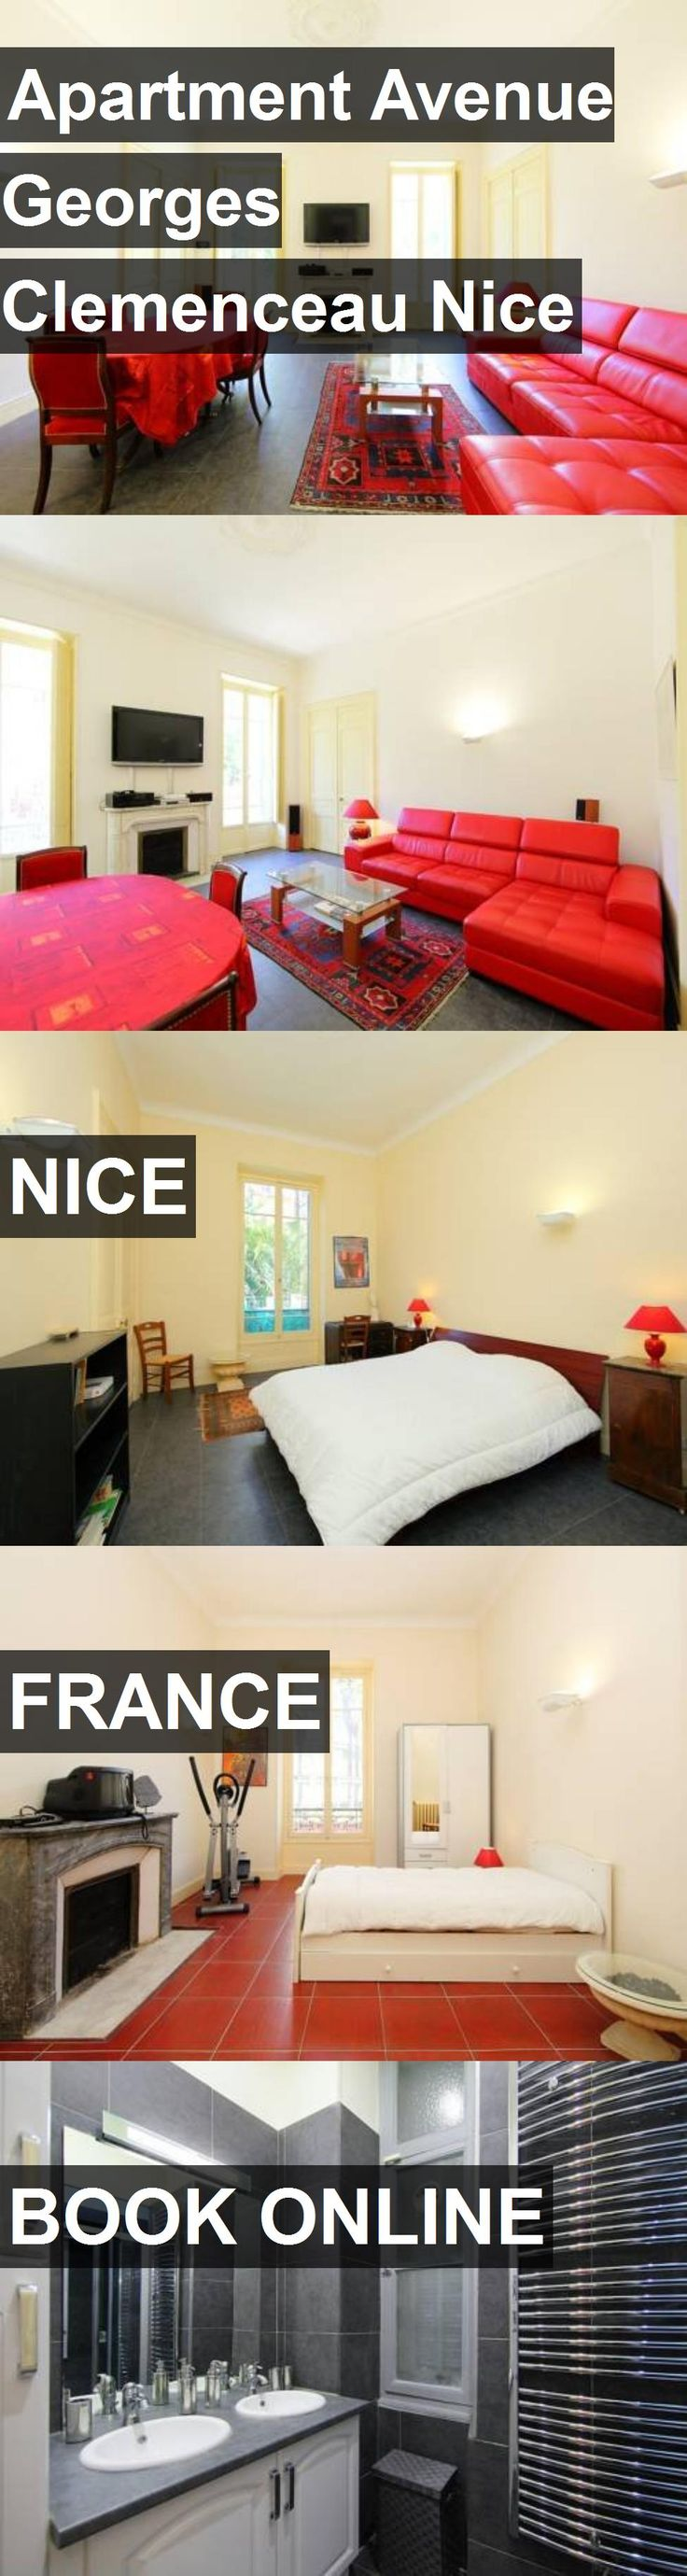 Hotel Apartment Avenue Georges Clemenceau Nice in Nice, France. For more information, photos, reviews and best prices please follow the link. #France #Nice #ApartmentAvenueGeorgesClemenceauNice #hotel #travel #vacation